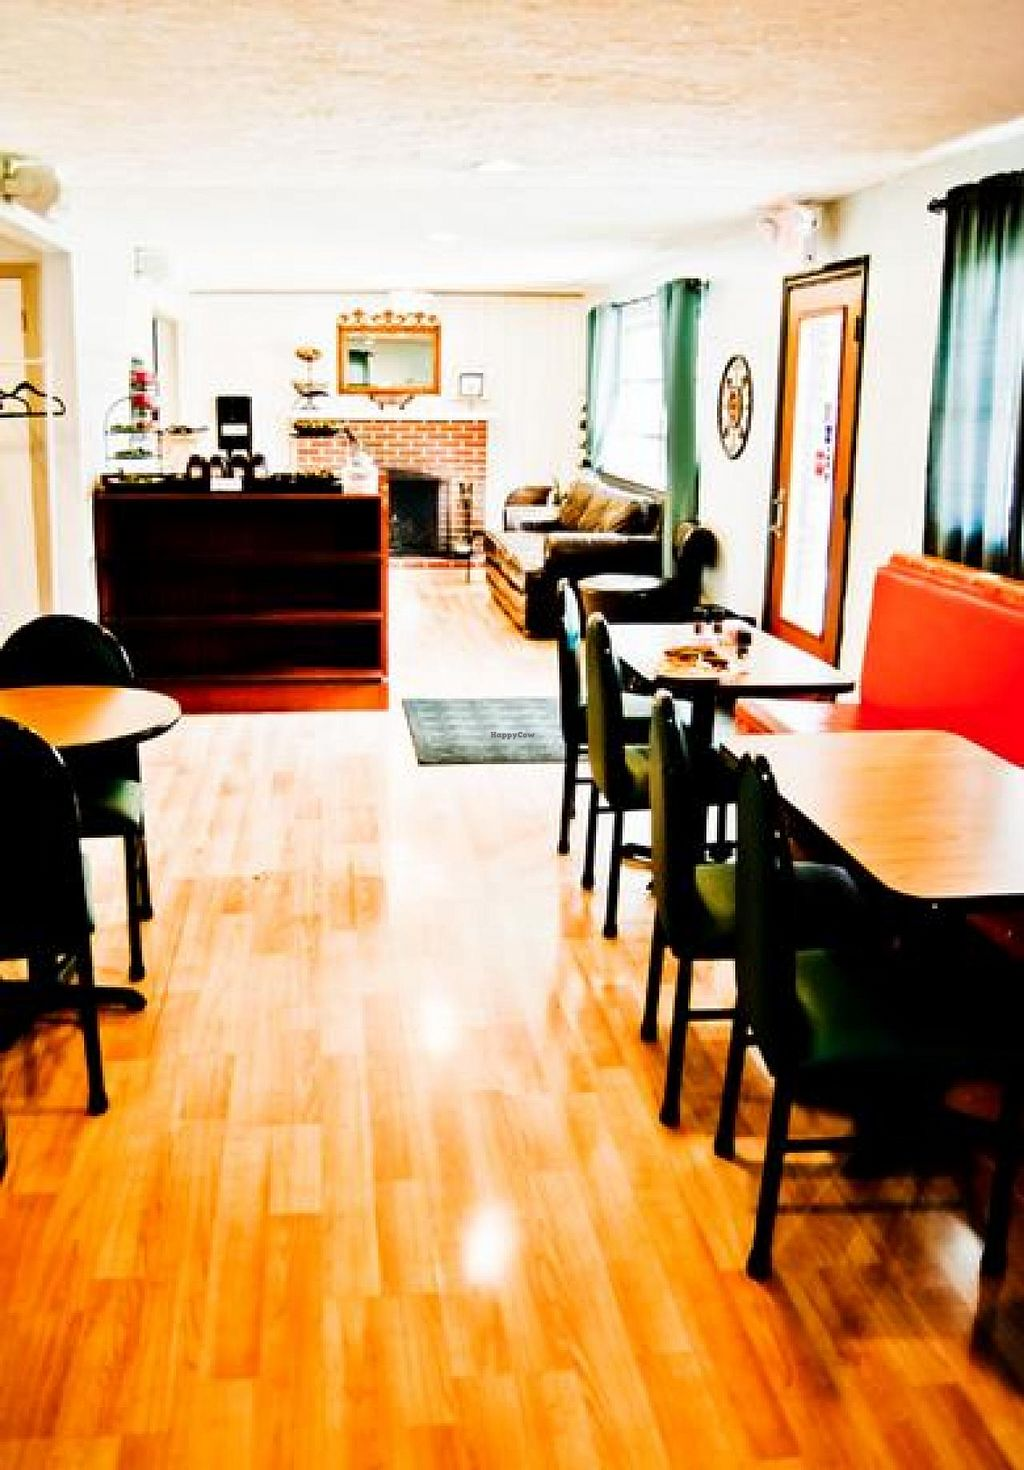 """Photo of Bite  by <a href=""""/members/profile/community"""">community</a> <br/>Dining area <br/> February 17, 2014  - <a href='/contact/abuse/image/45098/64425'>Report</a>"""